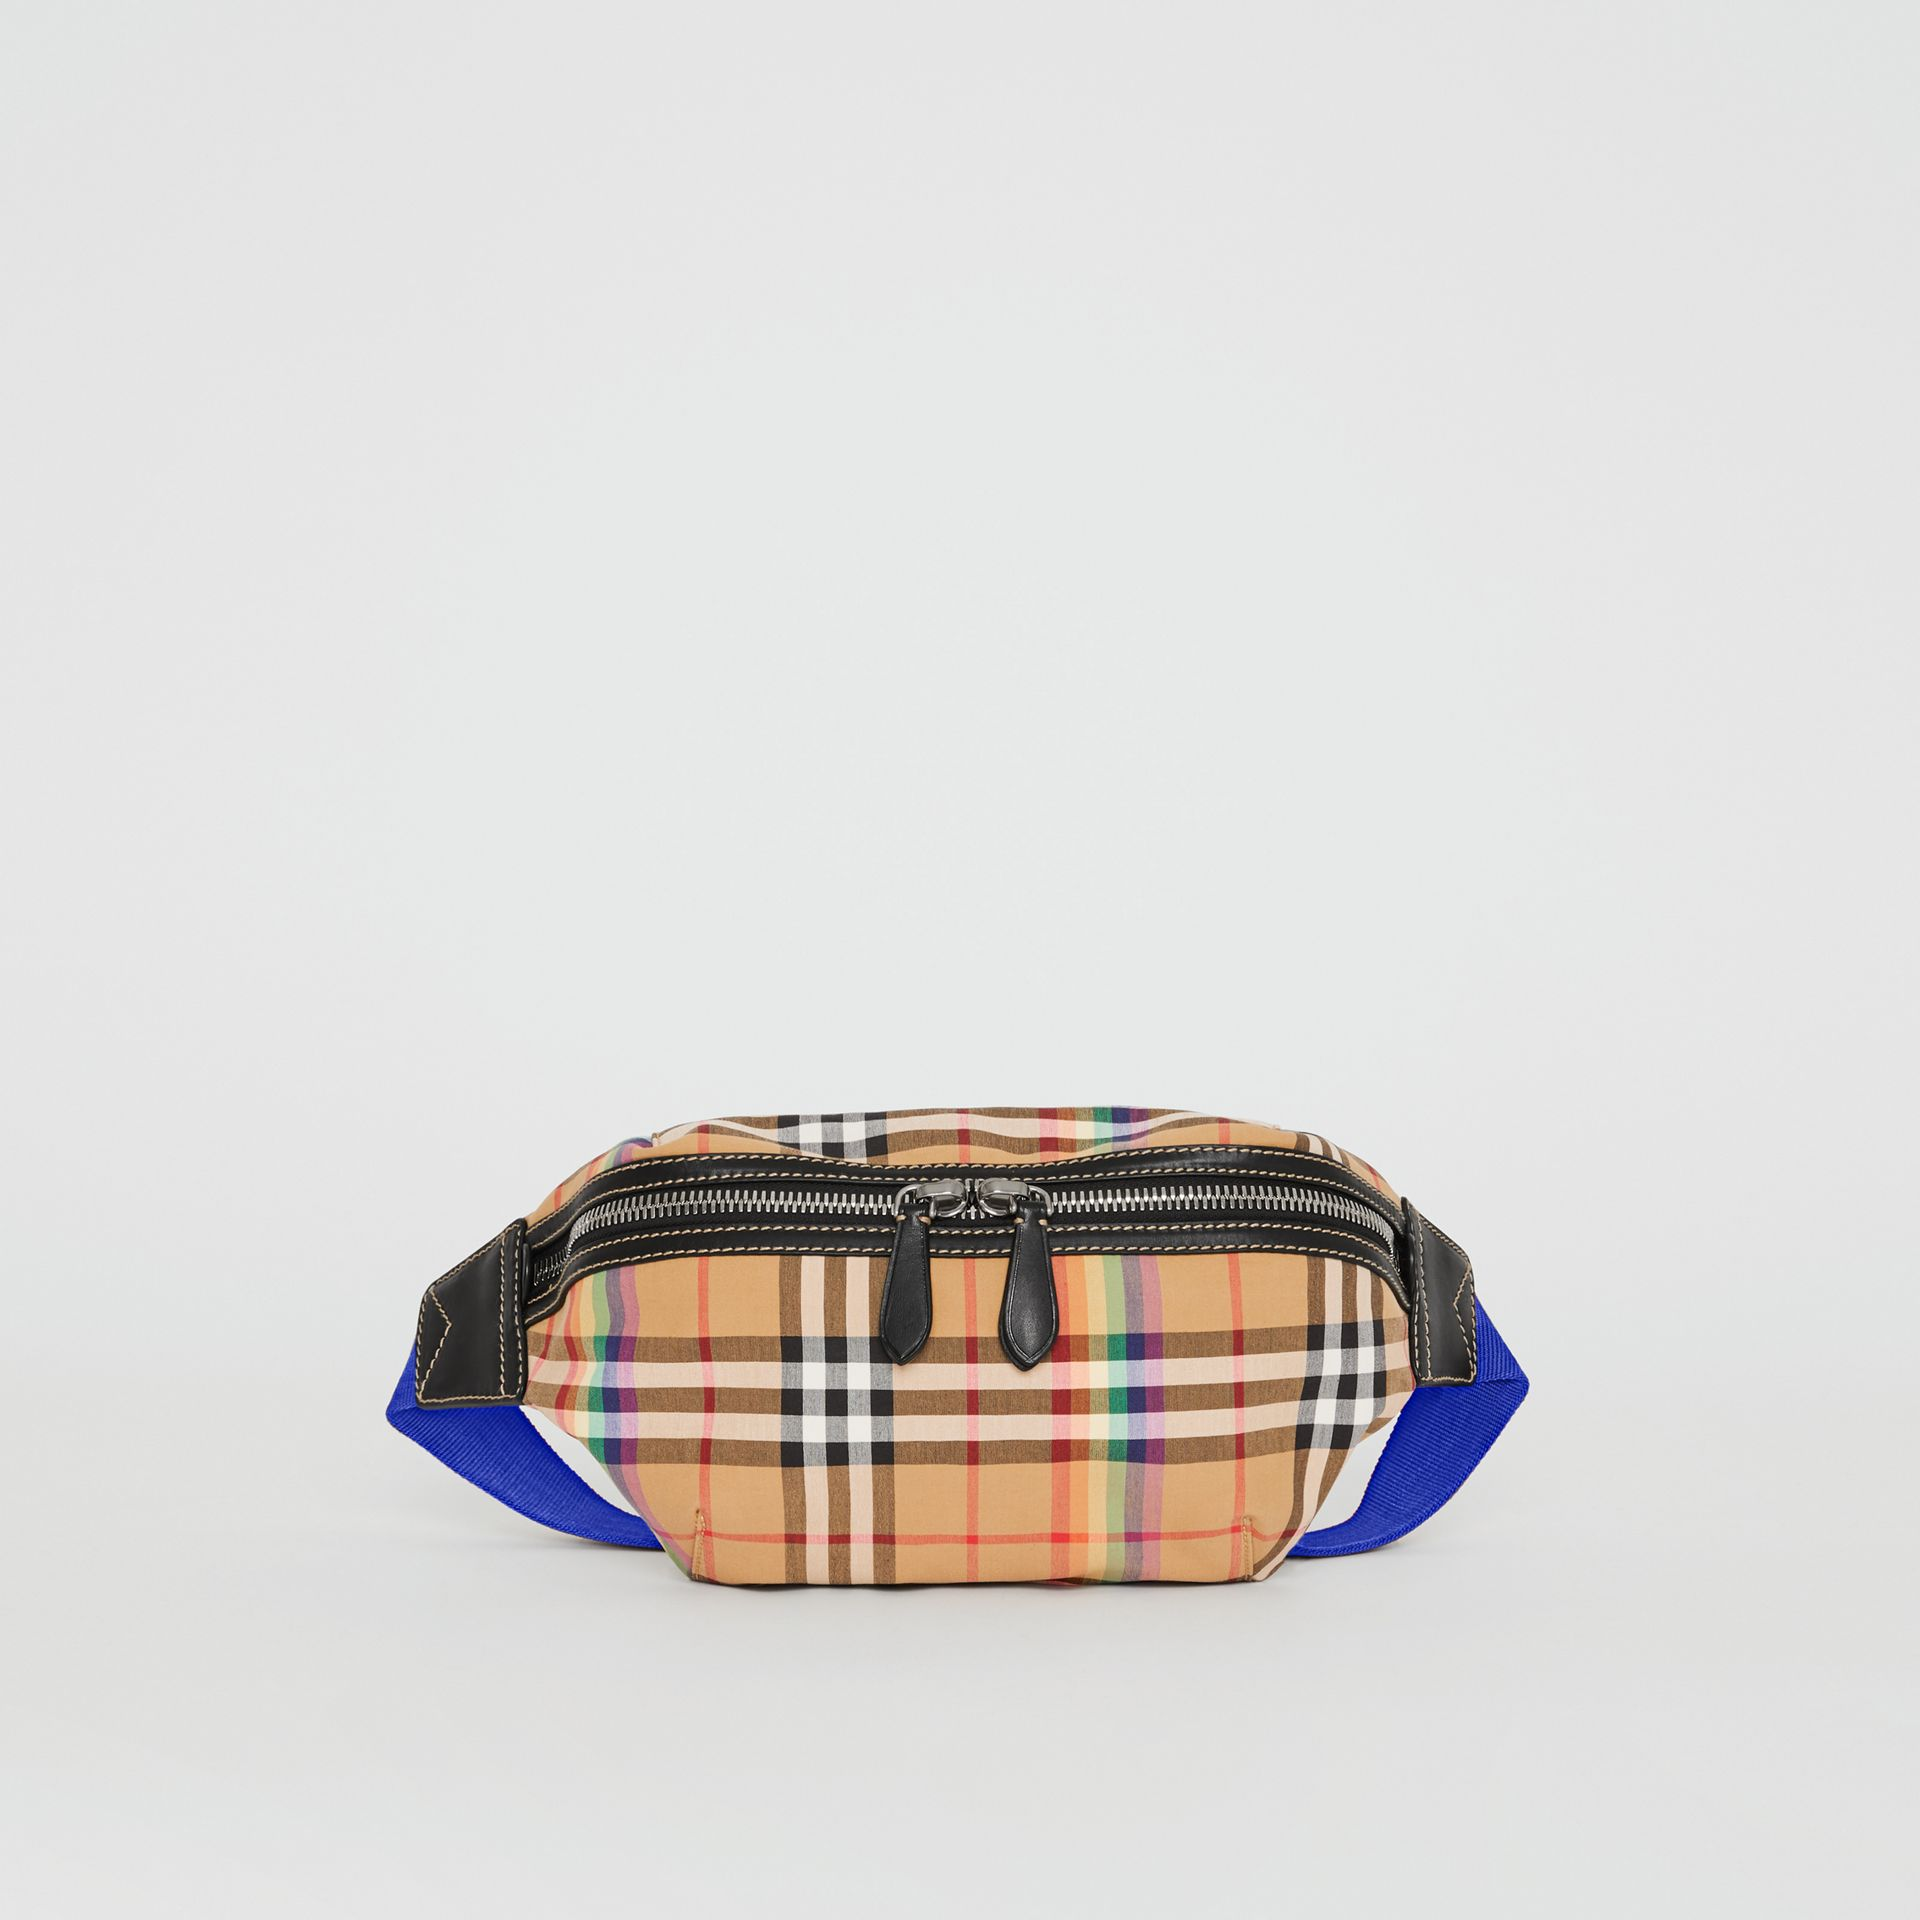 Medium Rainbow Vintage Check Bum Bag in Antique Yellow | Burberry United Kingdom - gallery image 3